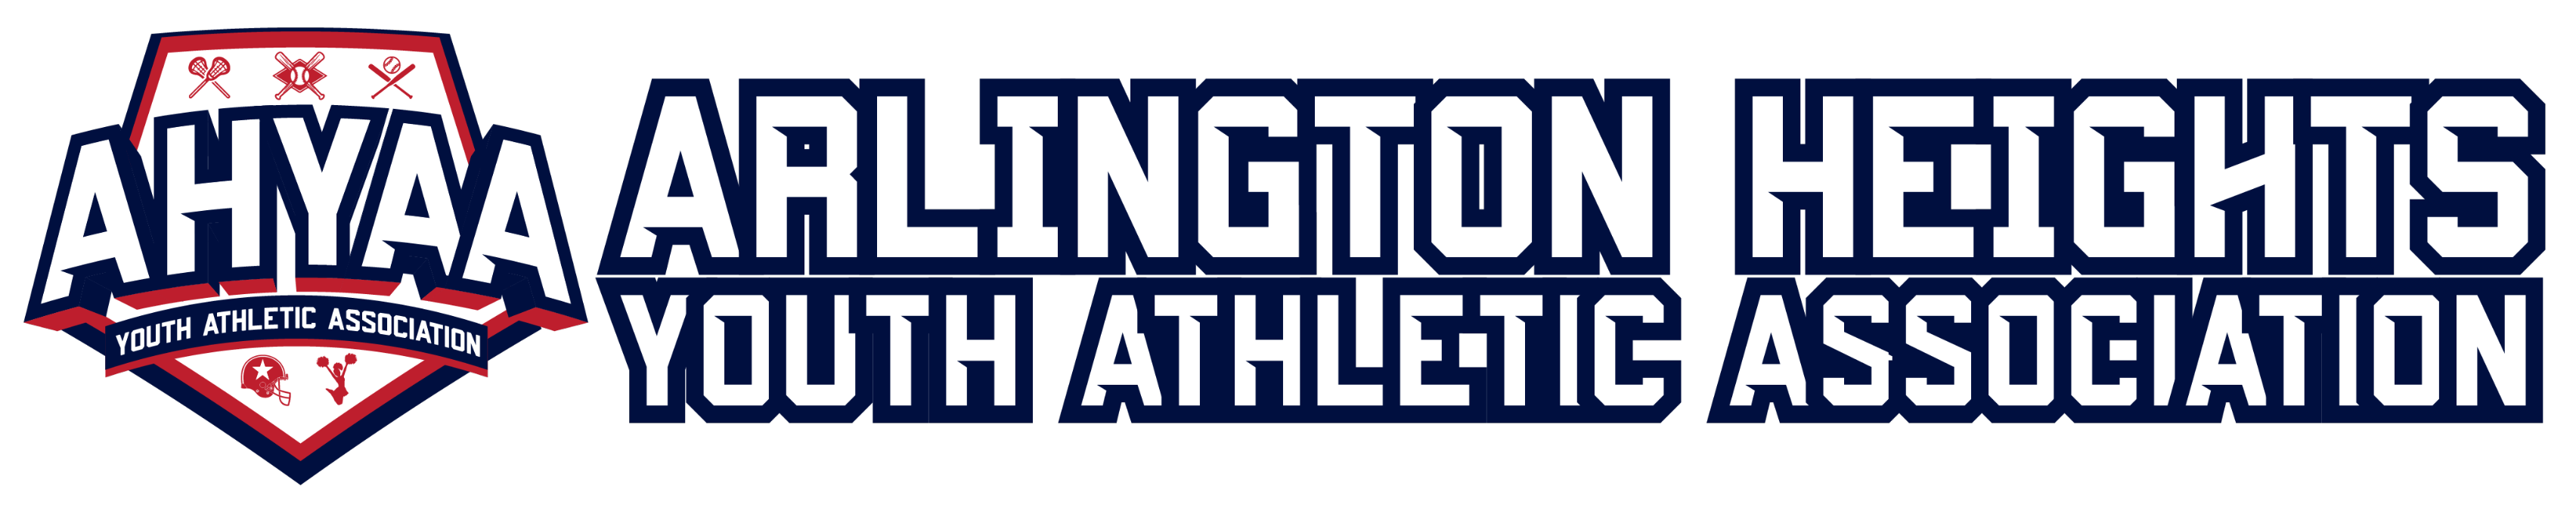 Arlington Heights Youth Athletic Association: Youth Baseball, Softball, Lacrosse, Football & Cheerleading, , Run, Field